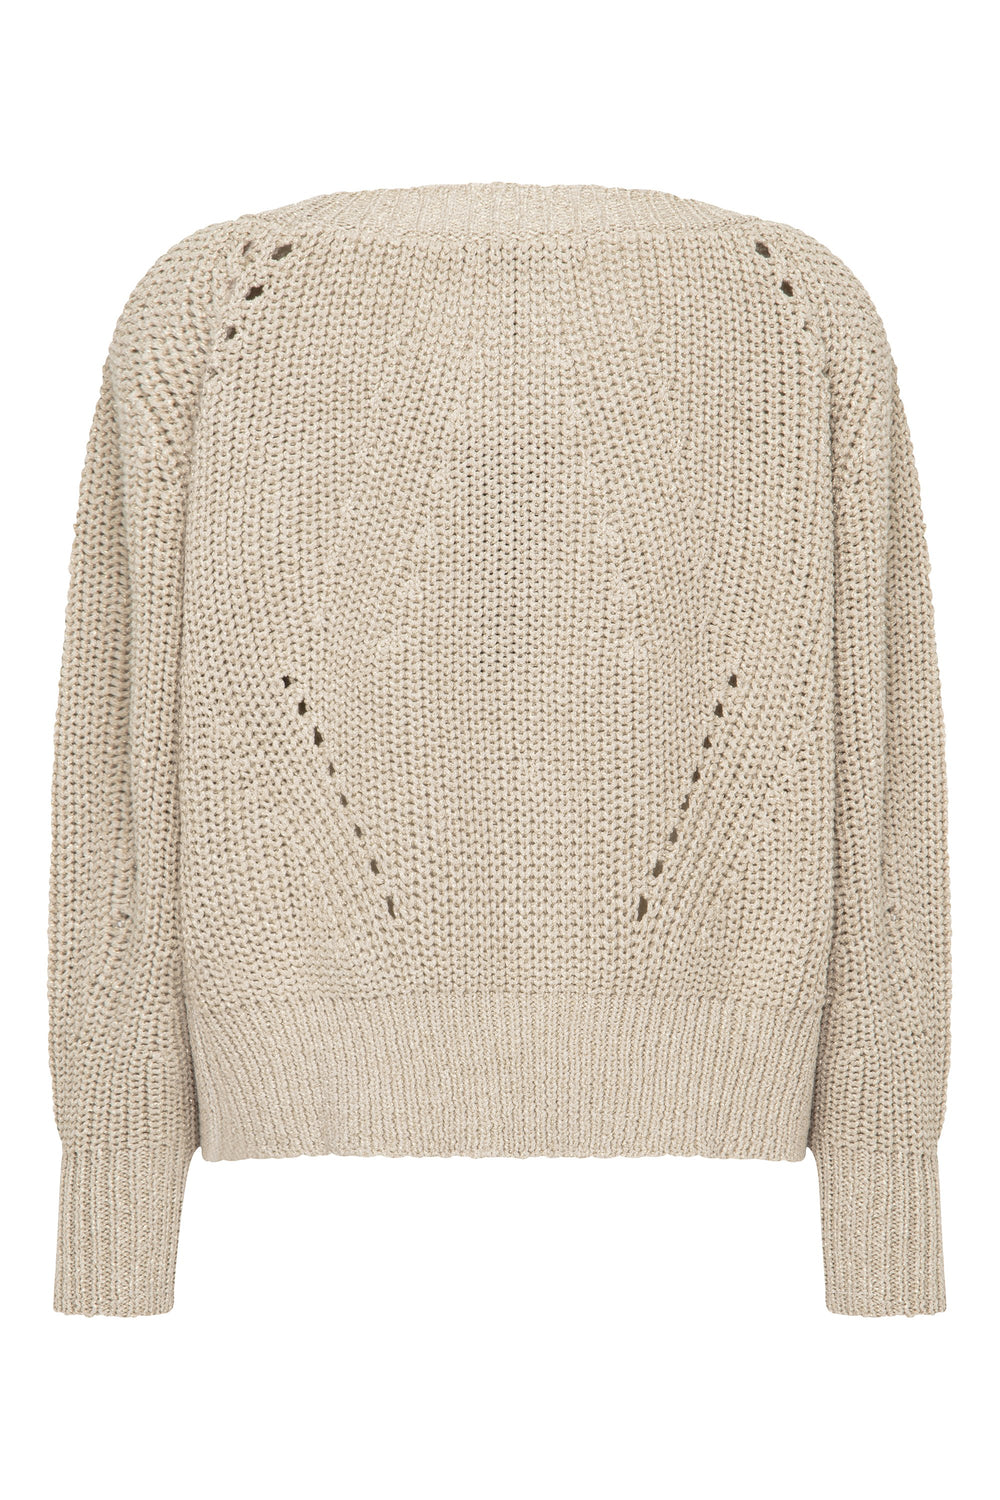 Bambi Jumper In Gold Lurex